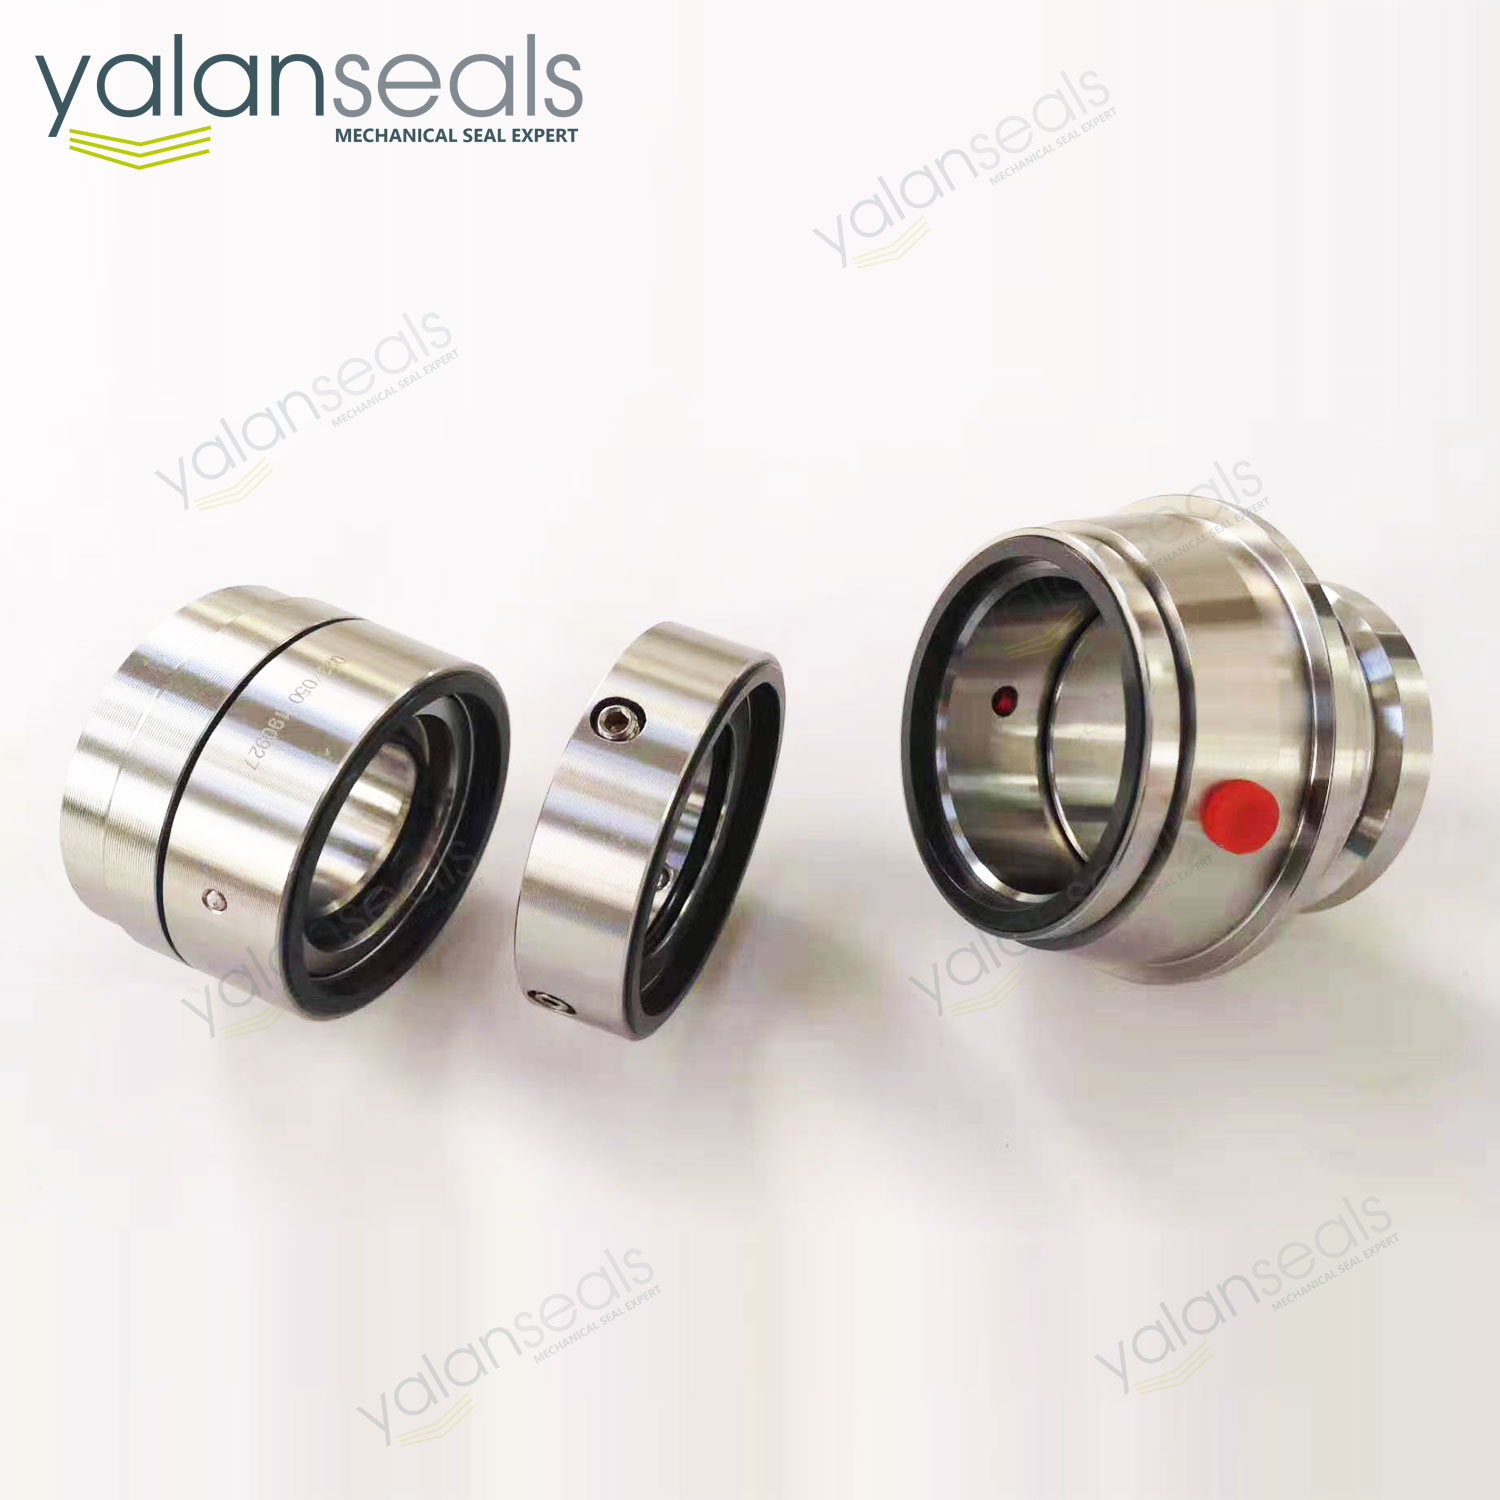 YALAN TB1, TB1F and TB2 Ready-fitted Mechanical Seals for AHLSTAR Pumps